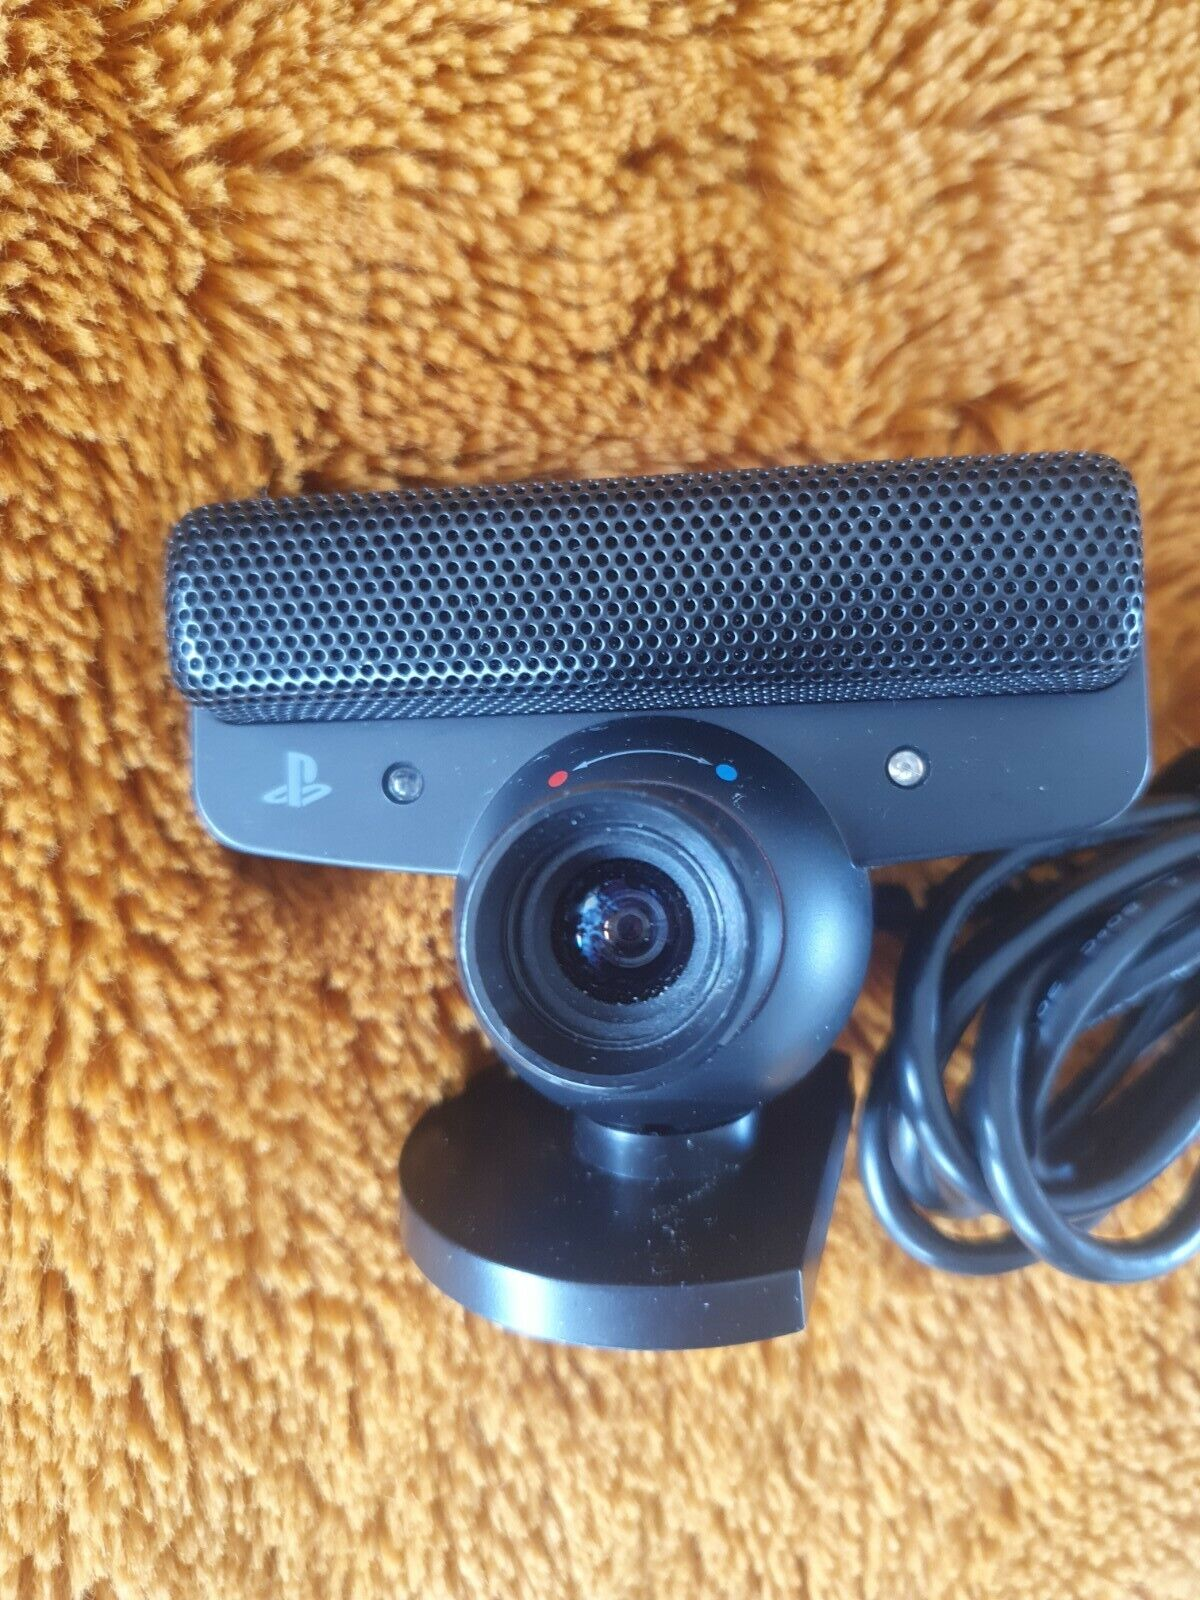 Official Sony Playstation 3 PS3 Eye Camera USB Move Motion Controller